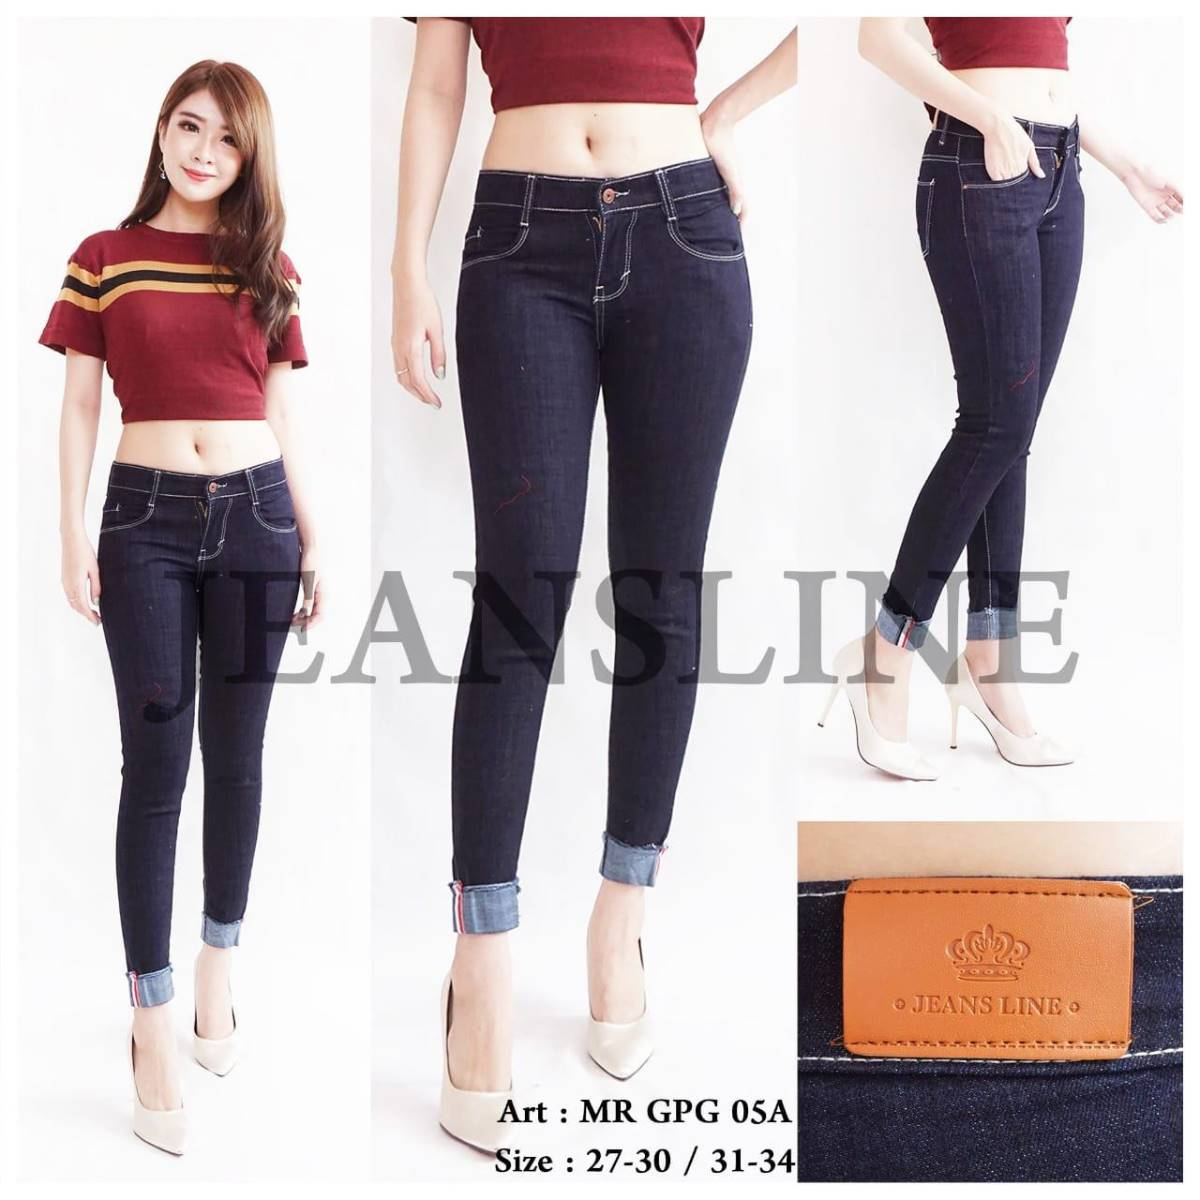 Celana Panjang Jeans Ladies (mr Gpg 05a) - Paket 12 Pcs - Size 31, 32, 33, 343